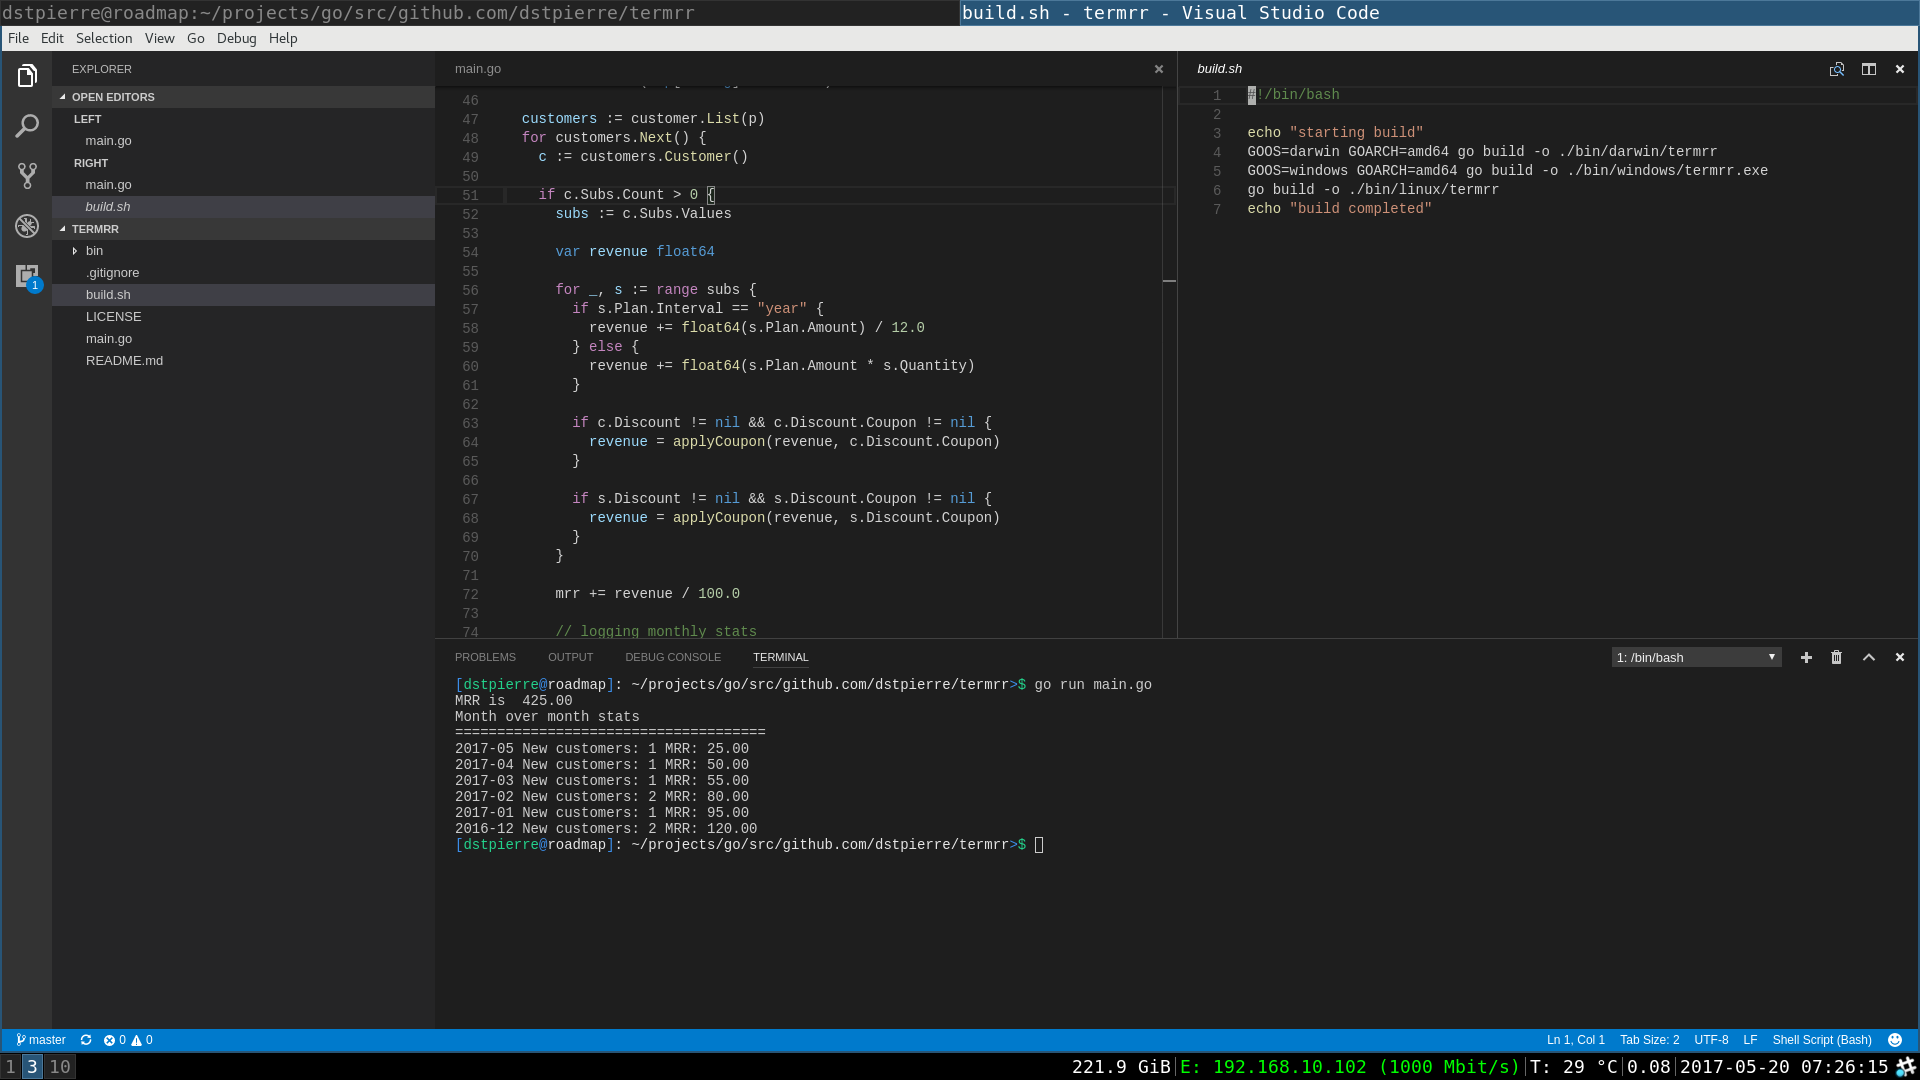 Code editor showing the main calculation logic and the terminal output for termrr